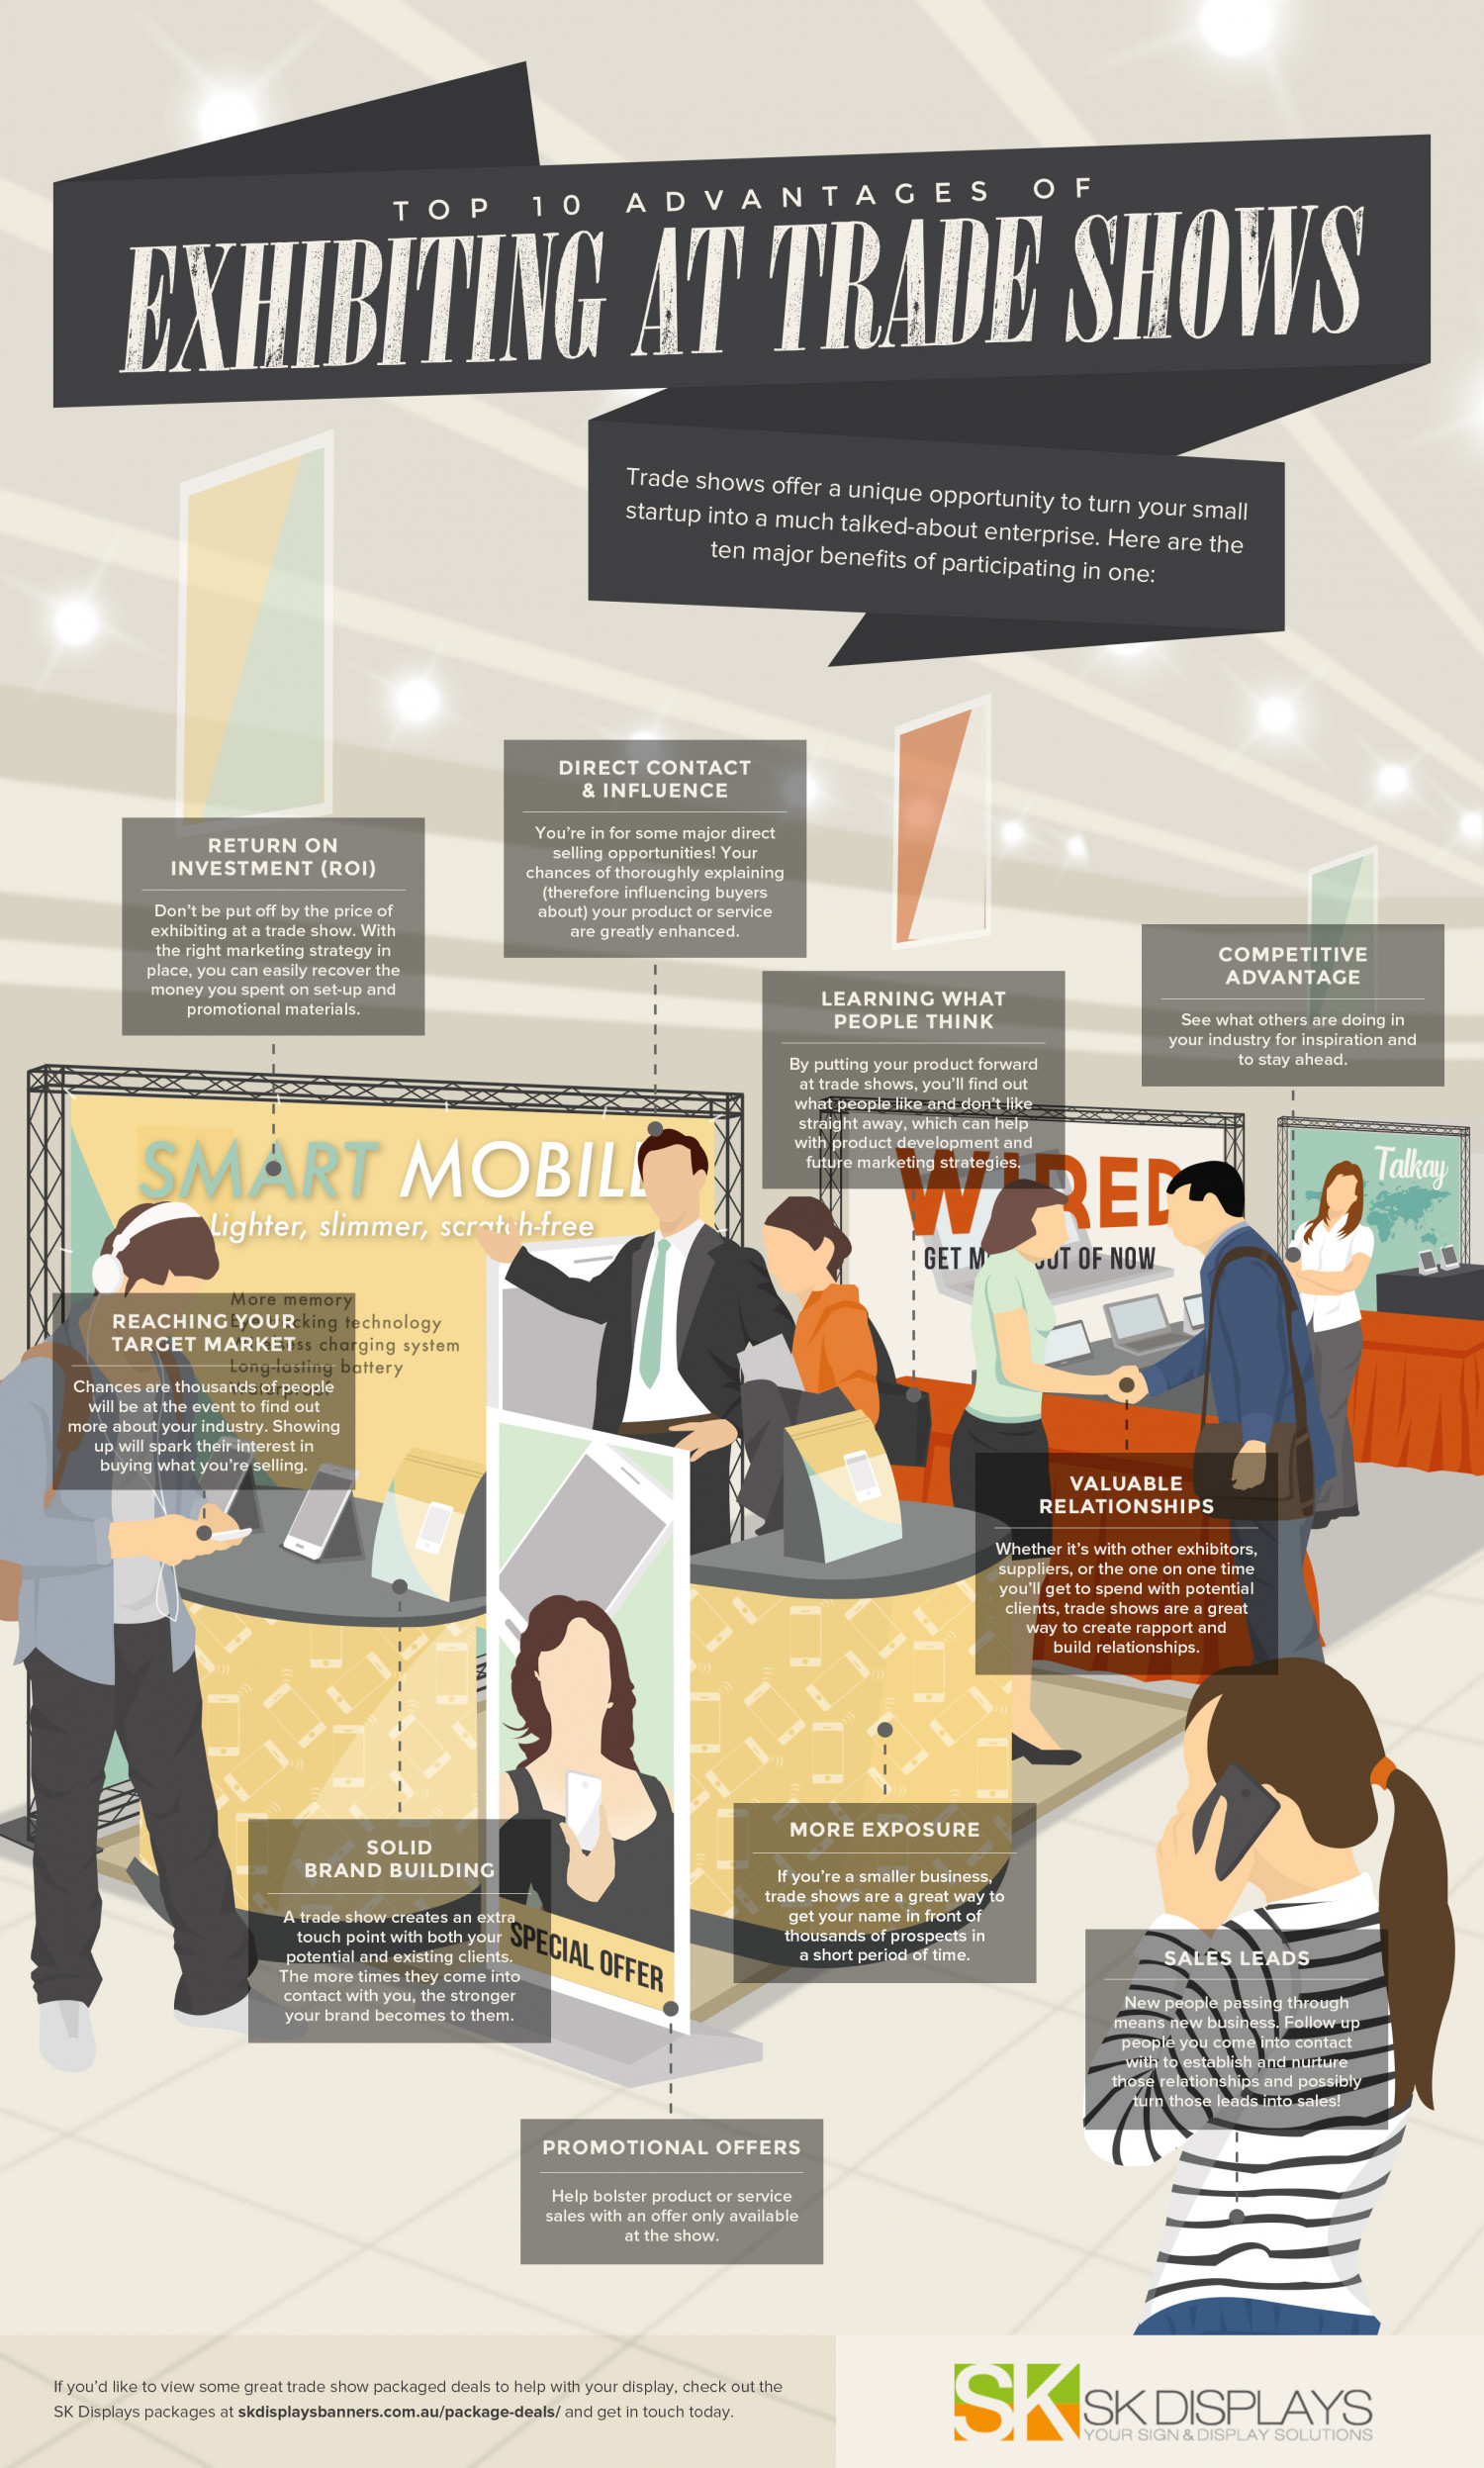 Top 10 Advantages of Exhibiting at Trade Shows Infographic